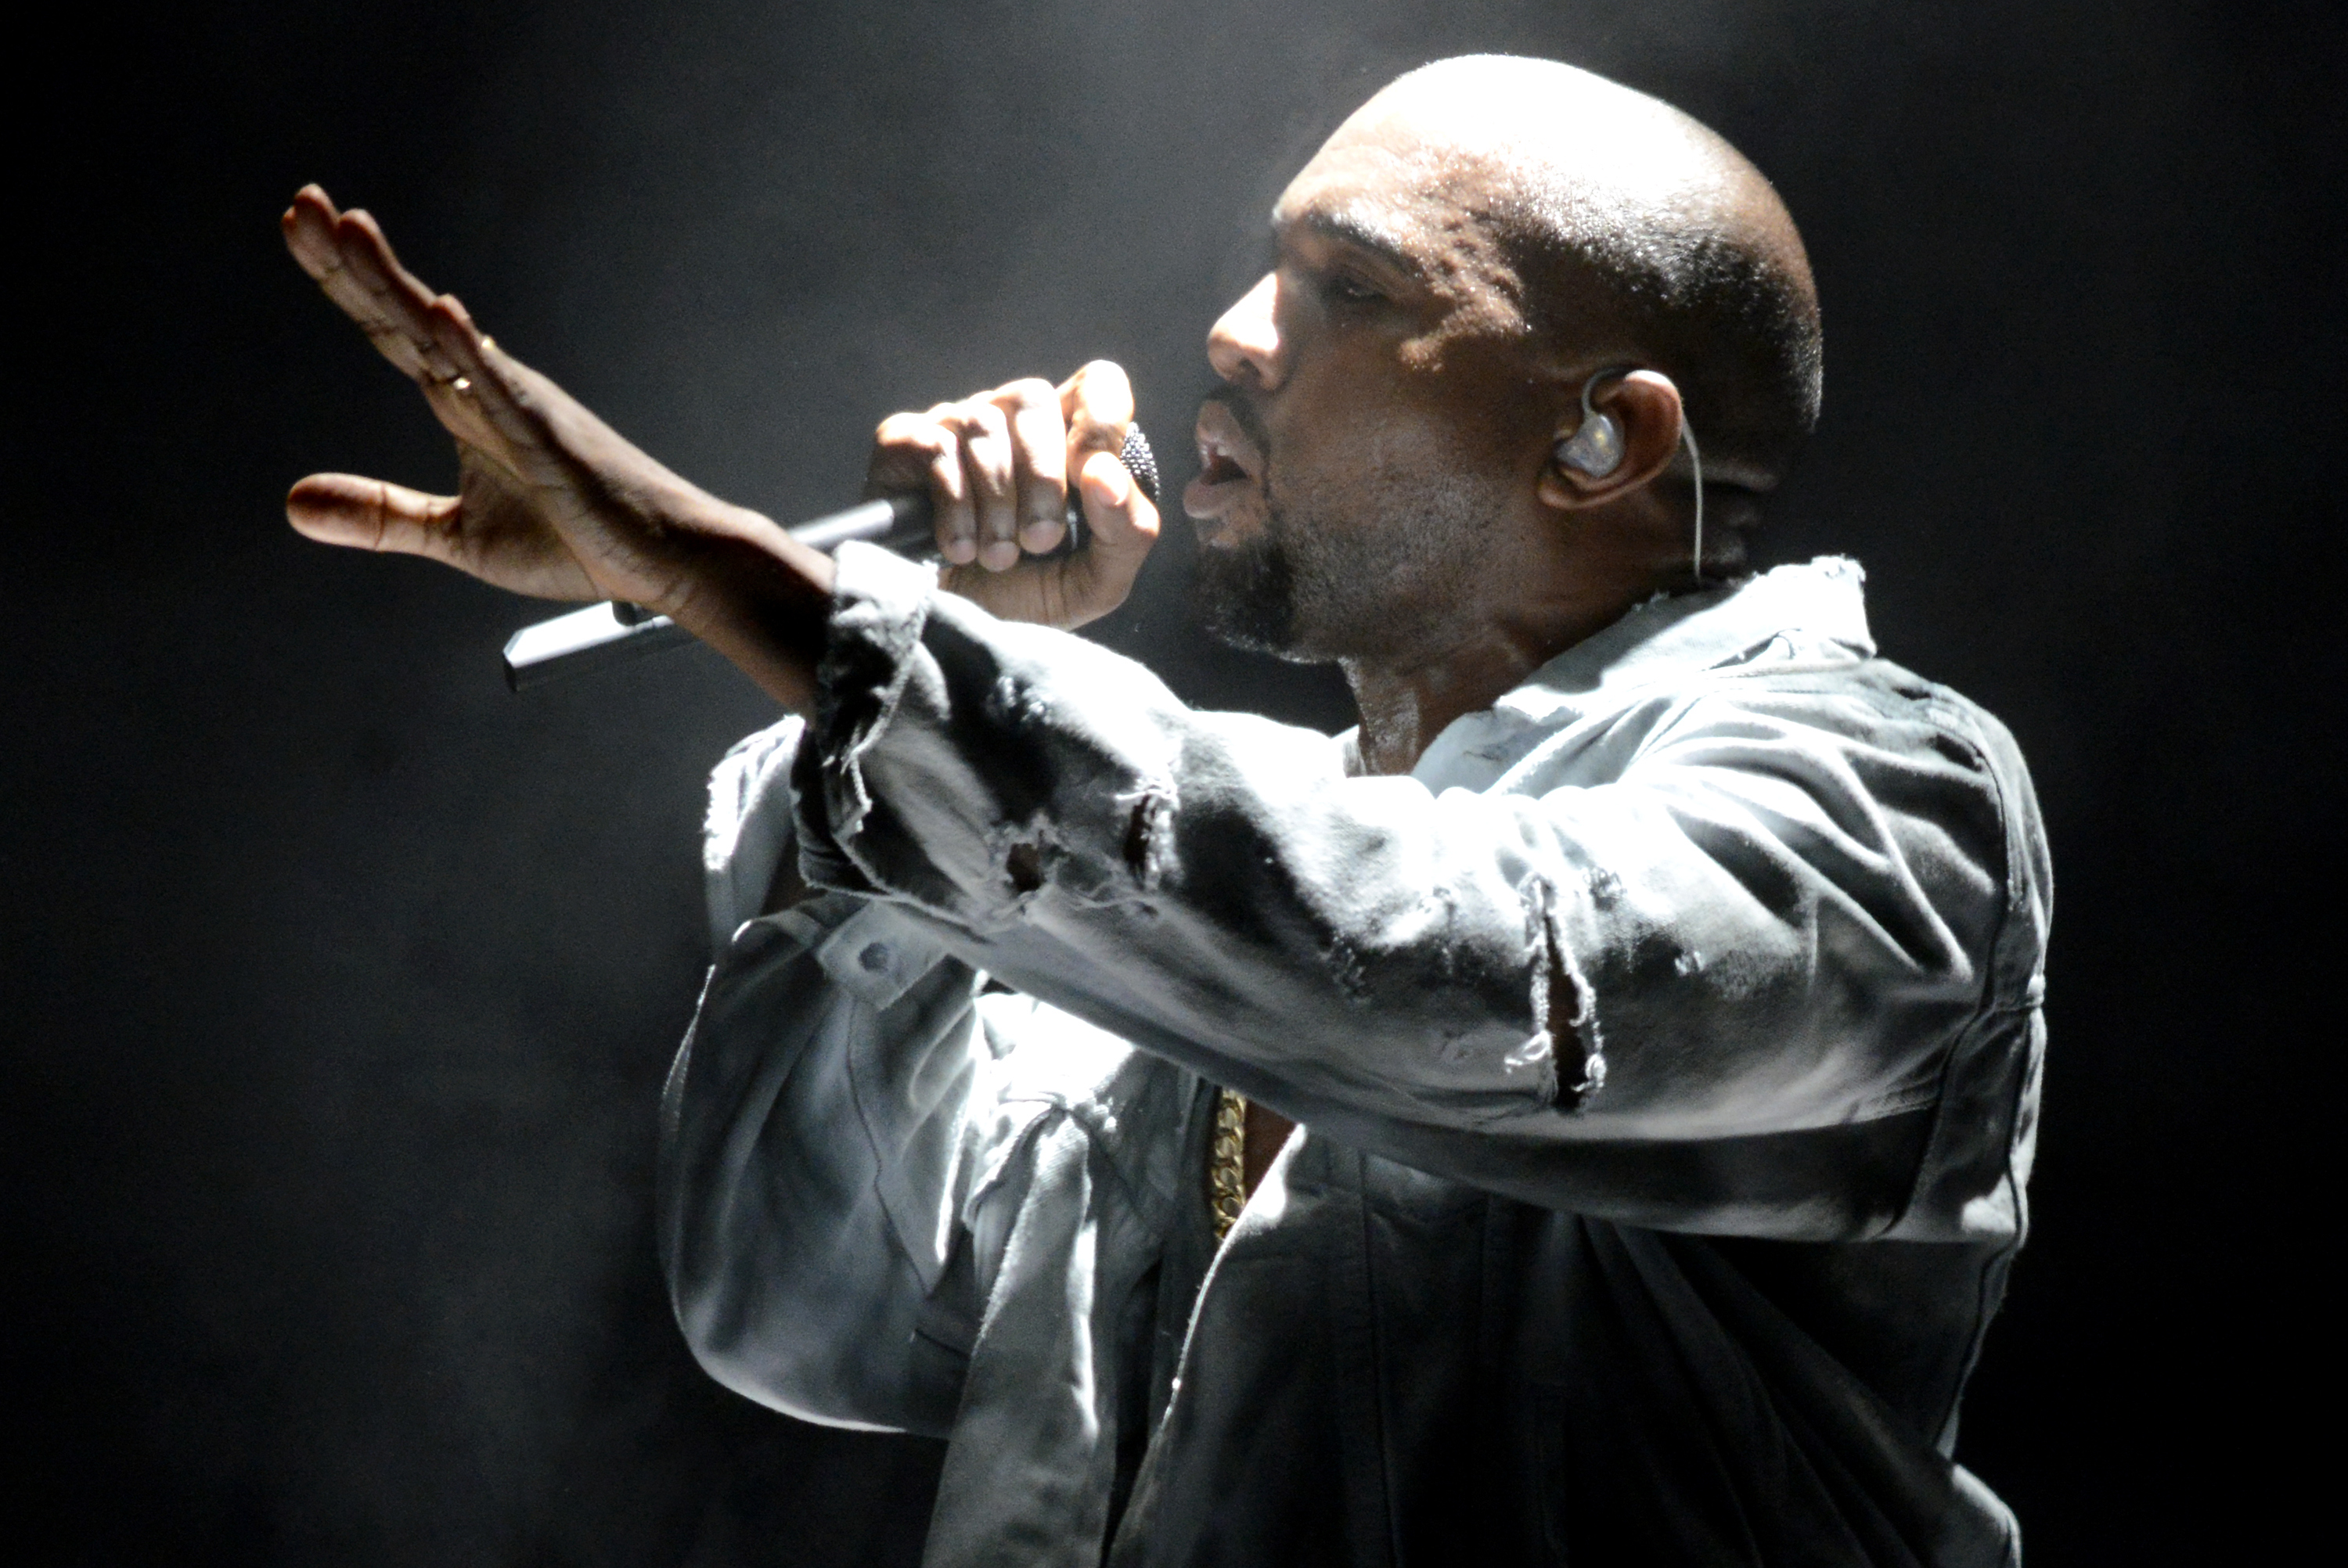 Kanye West performs during the Outside Lands Music and Arts Festival at Golden Gate Park on Aug. 8, 2014 in San Francisco.